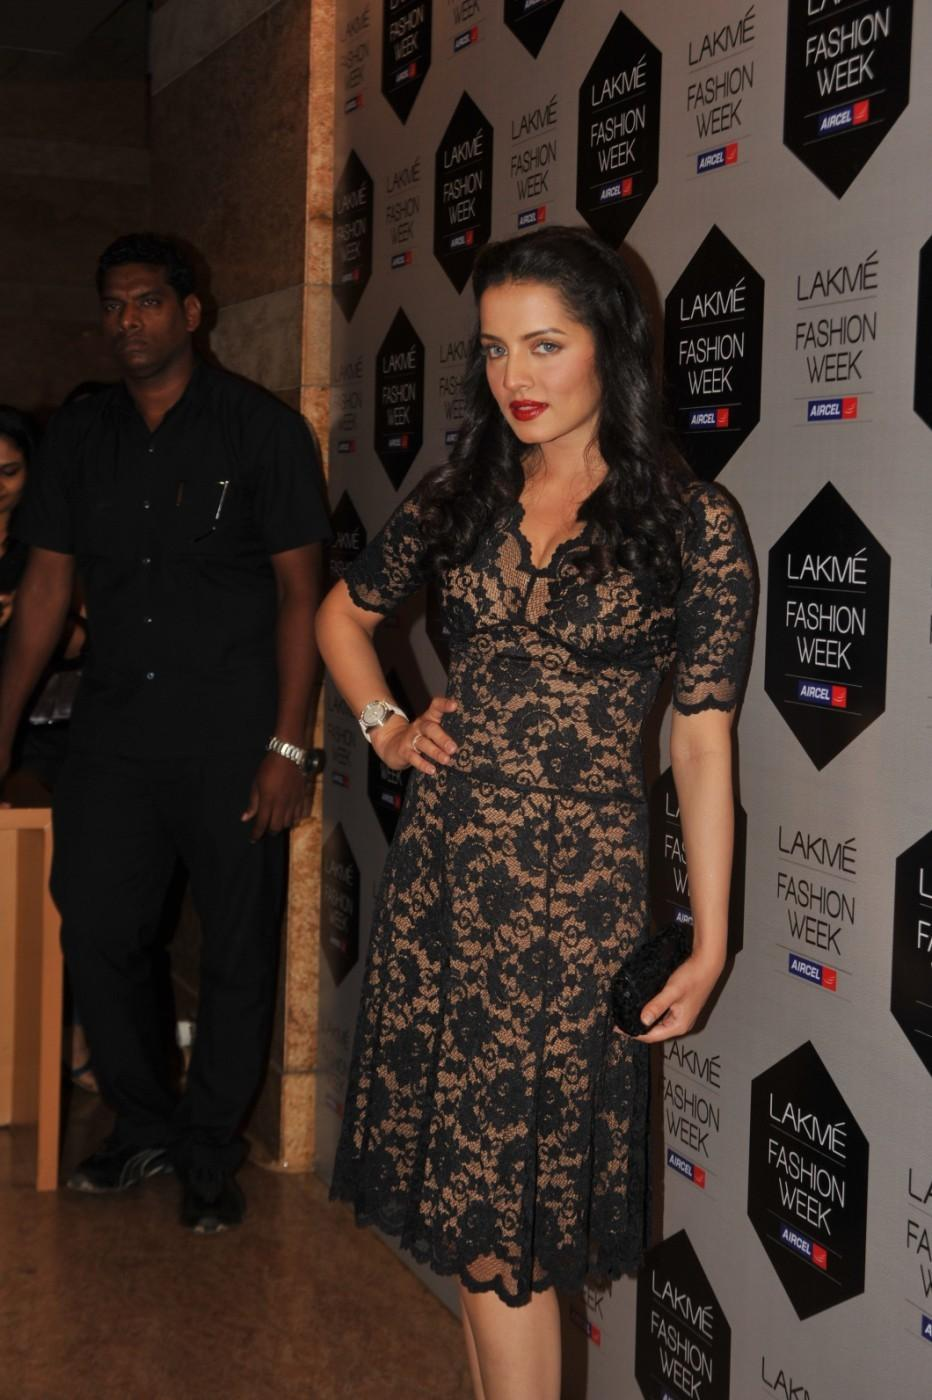 Celina Jaitley - Lakme Fashion Week 2012 Day 5 Photo